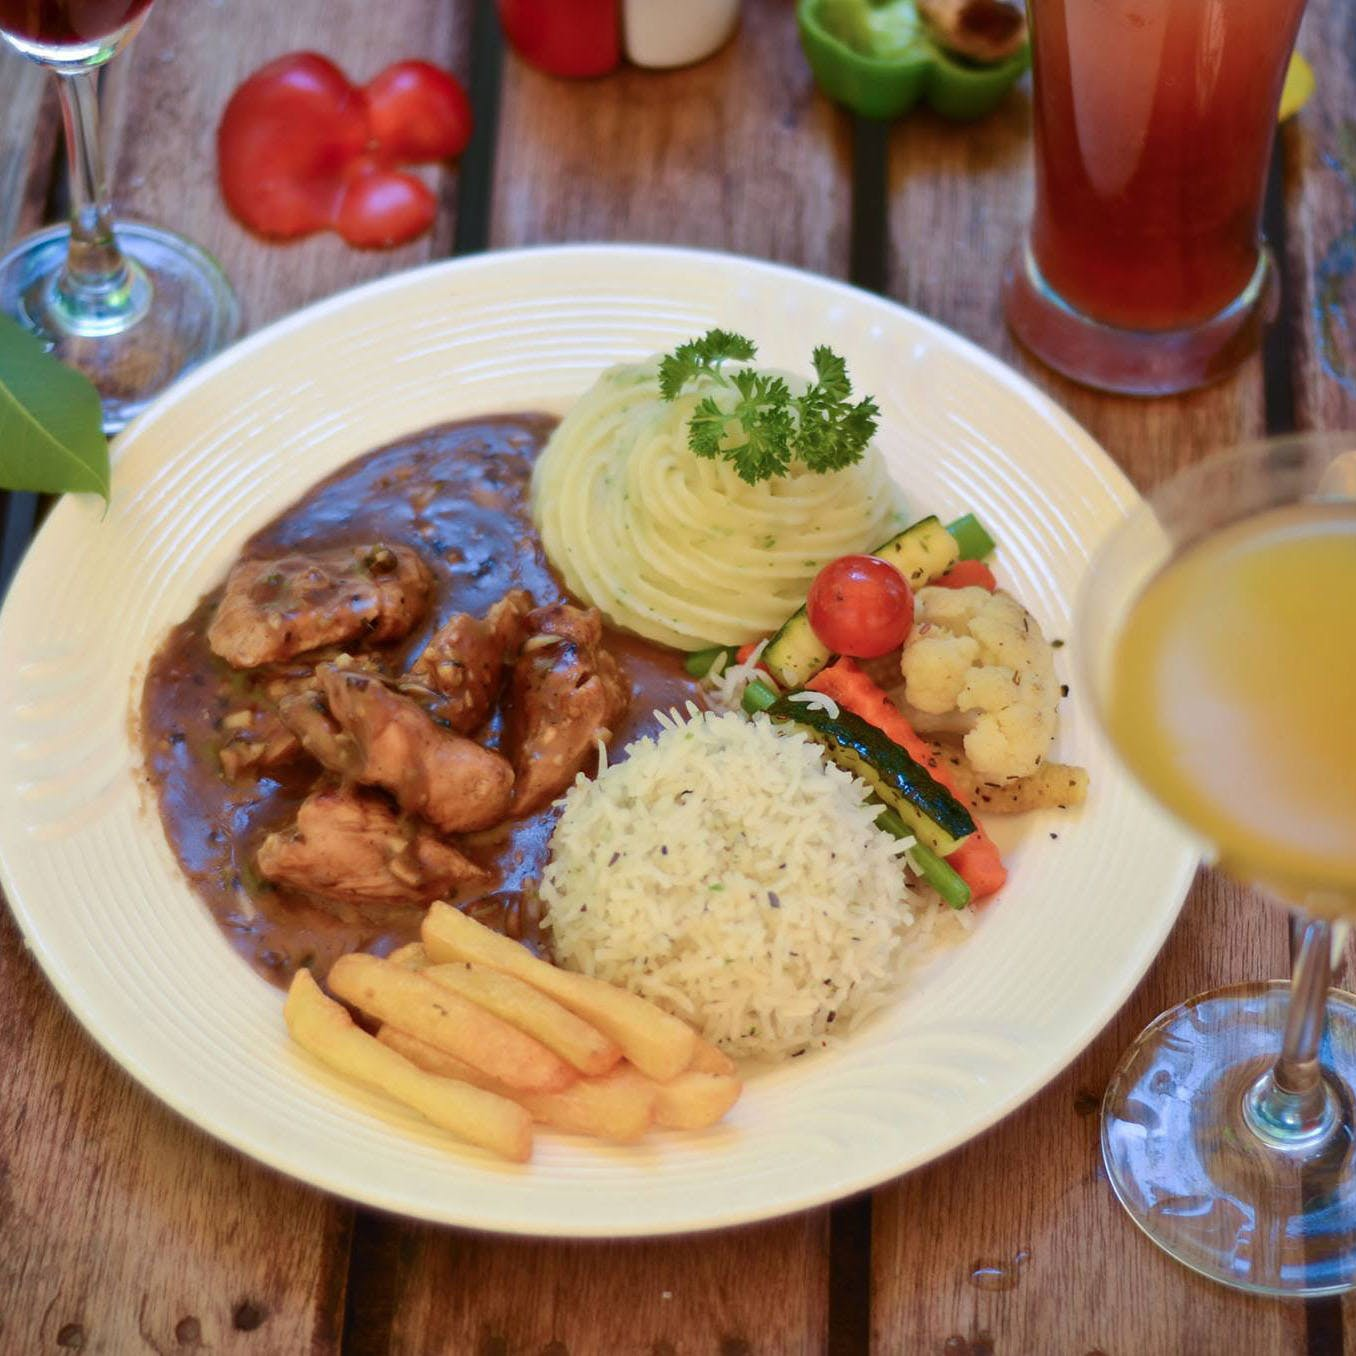 Dish,Food,Cuisine,Ingredient,Meal,Lunch,Produce,Recipe,Meat,Plate lunch